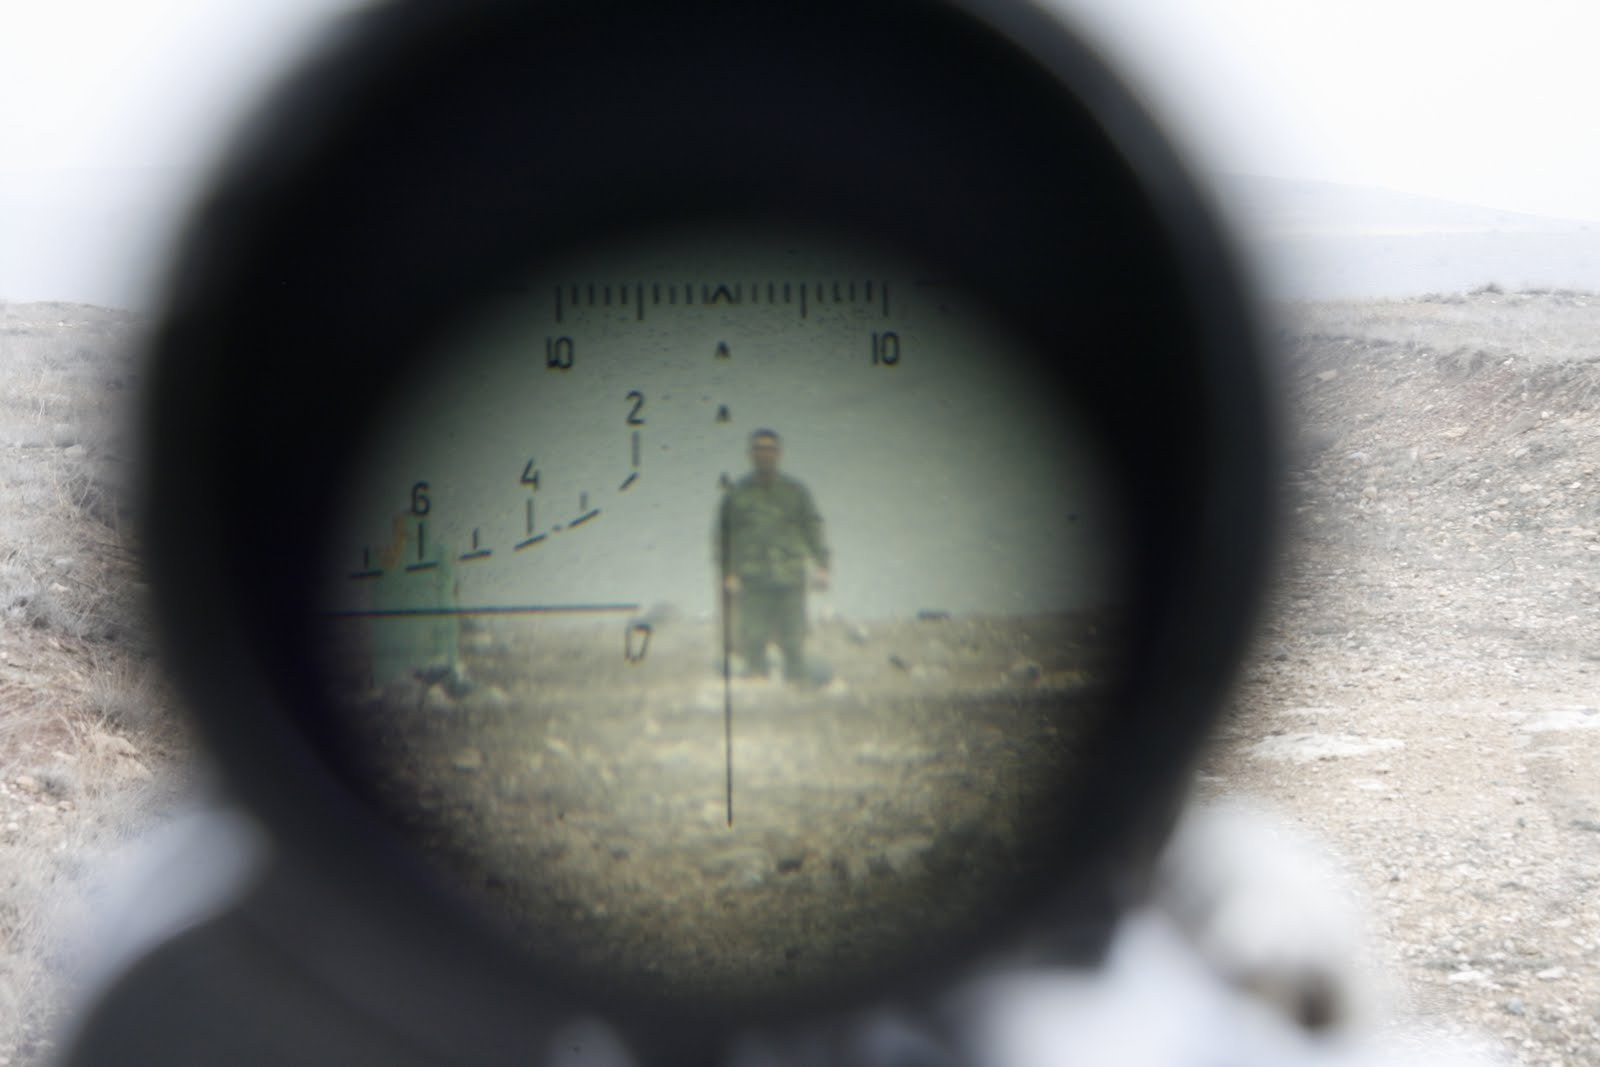 Photograph Soldier in gun sight by Albert Poghosyan on 500px